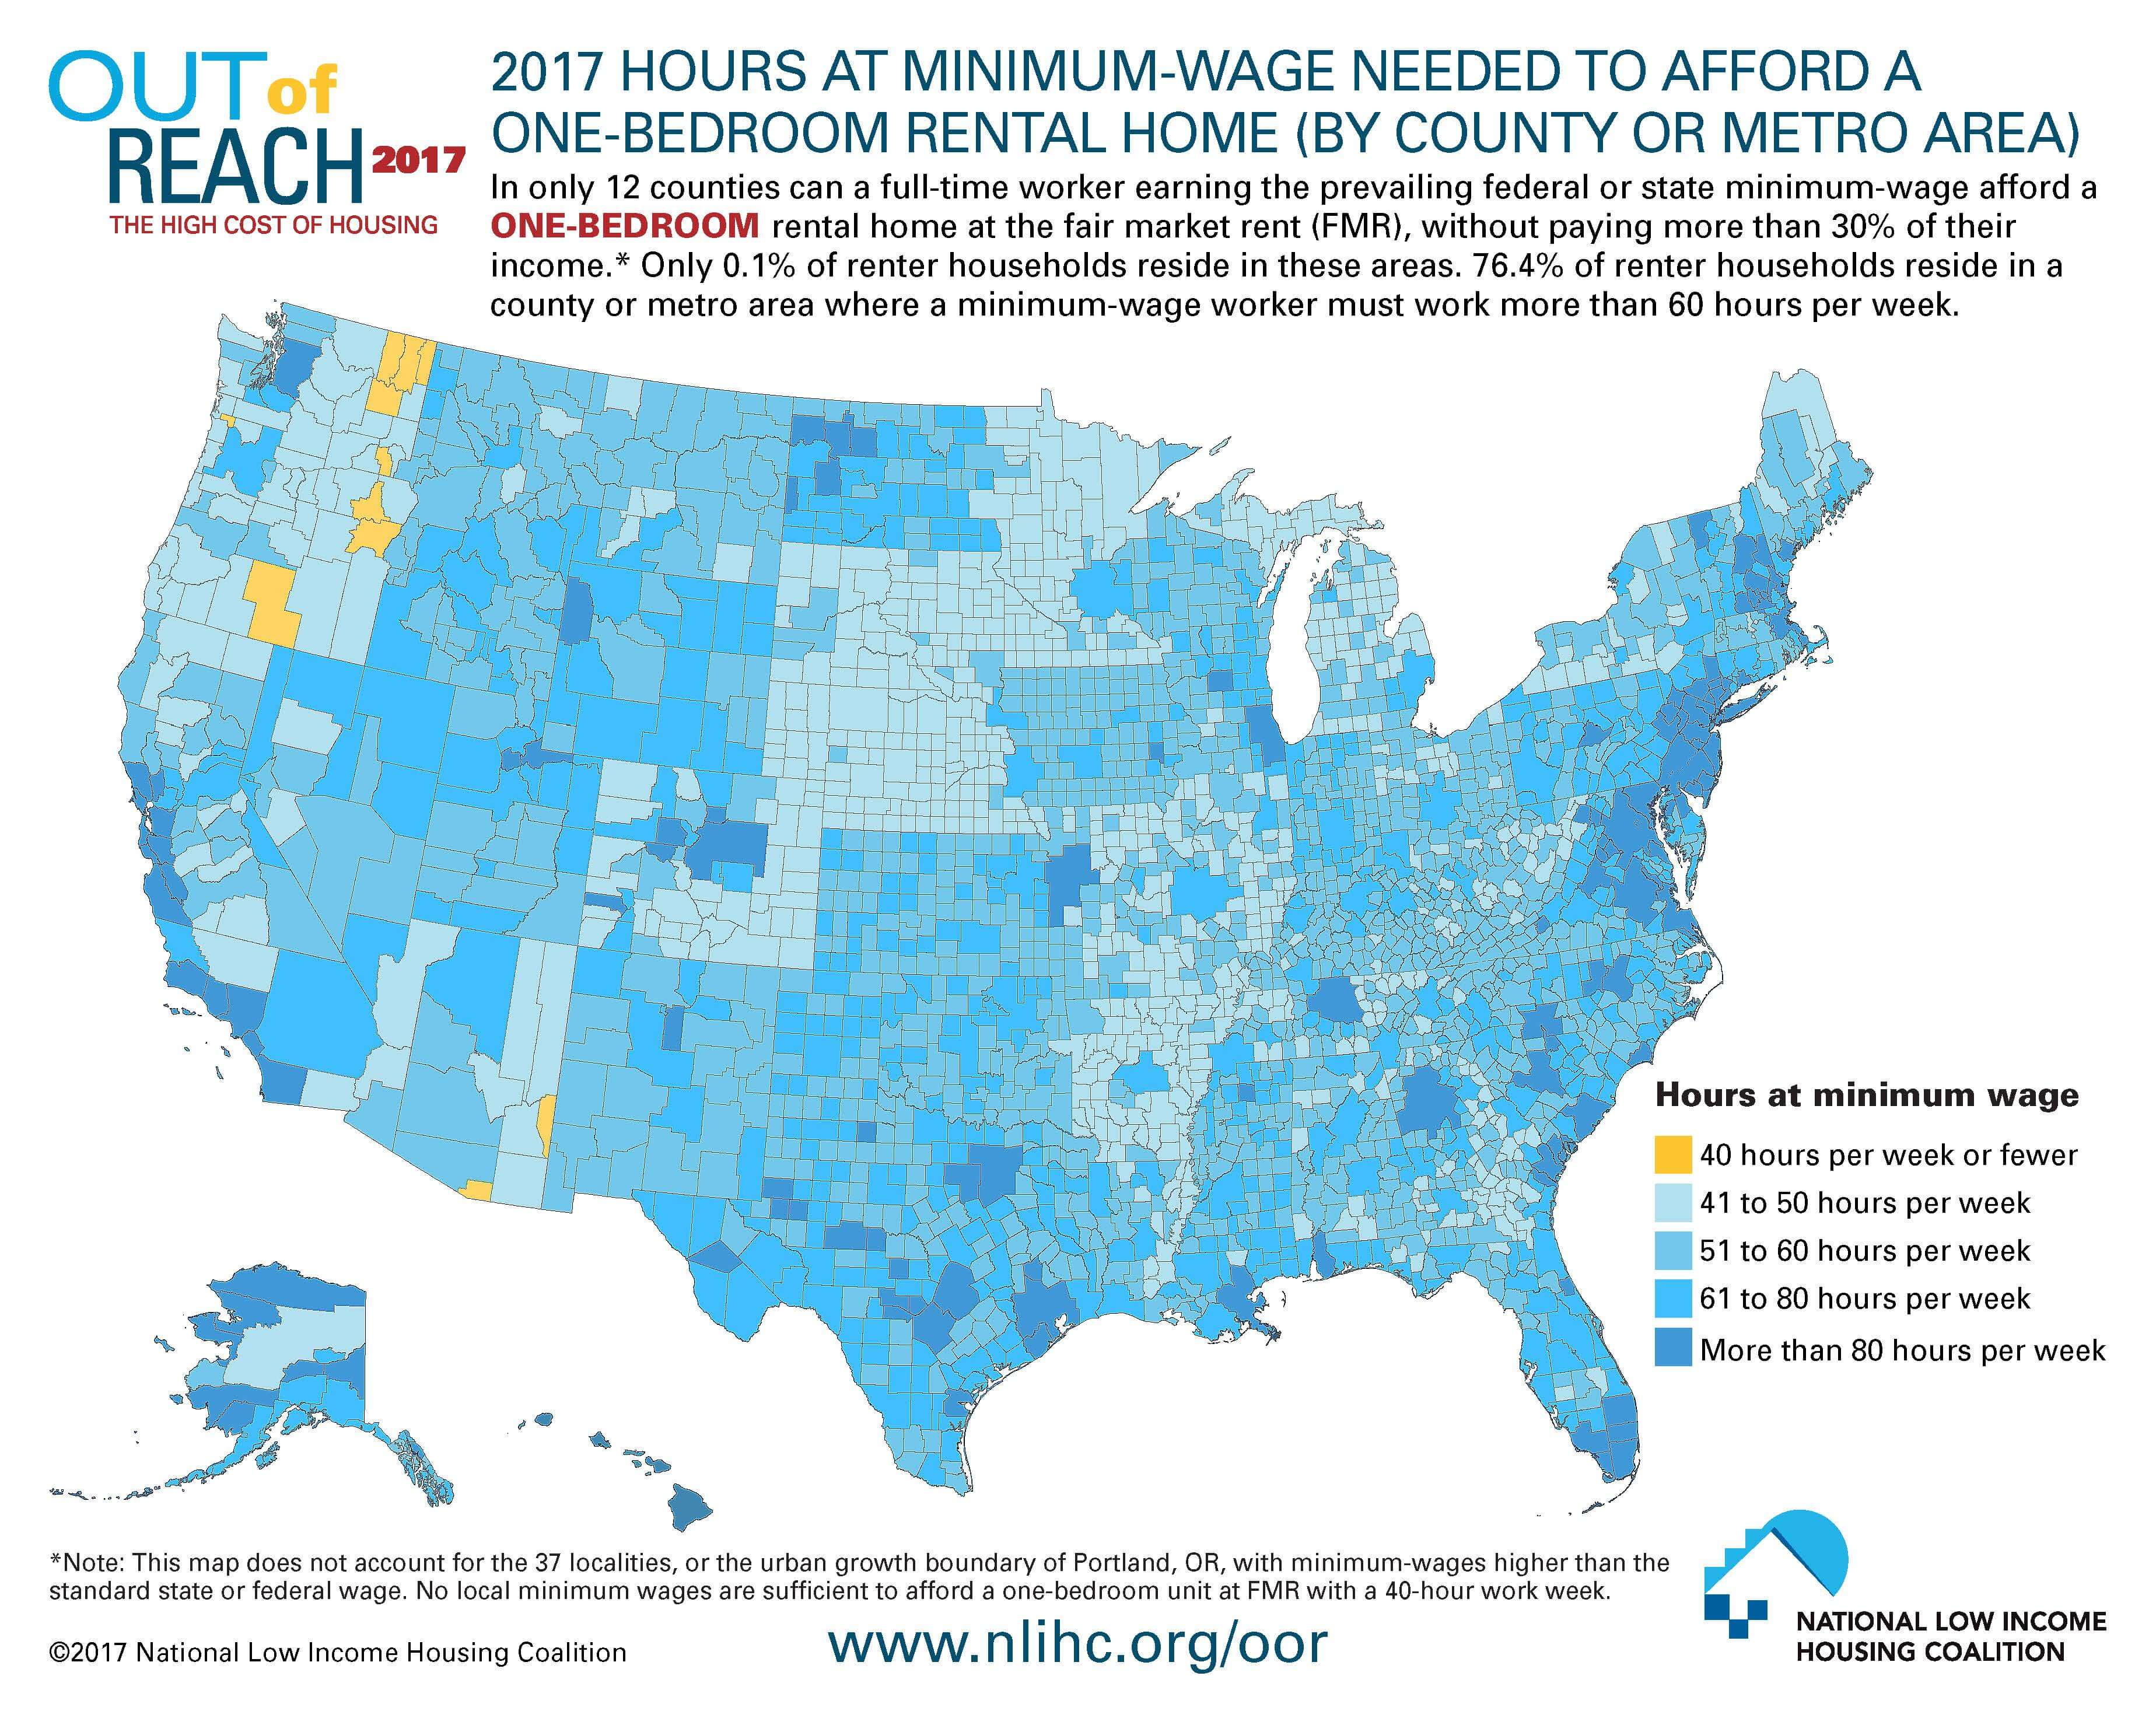 Out of Reach_2017_Min-Wage-Map_County-Metro.pdf